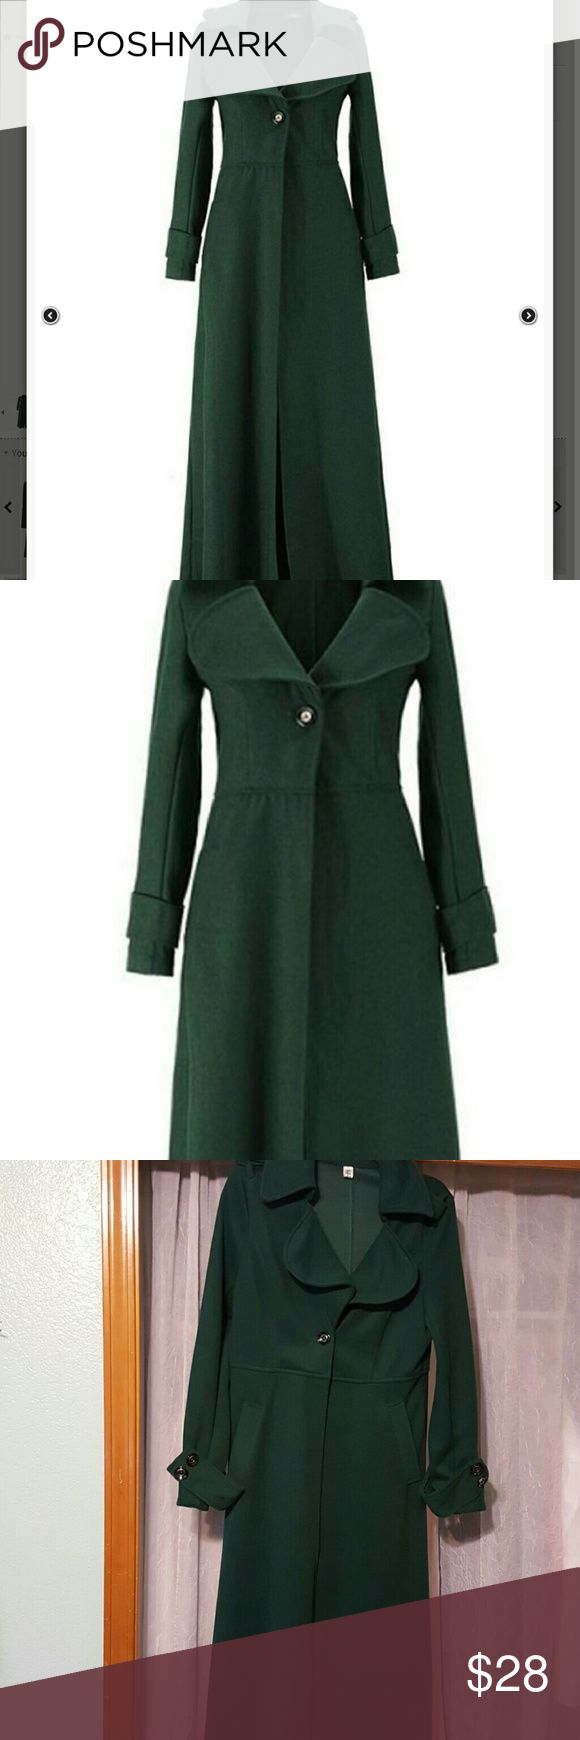 Awesome long overcoat Forest green, button details at cuffs and shoulders and back, one button closure,  55 inches from shoulder to hem, never worn boutique  Jackets & Coats